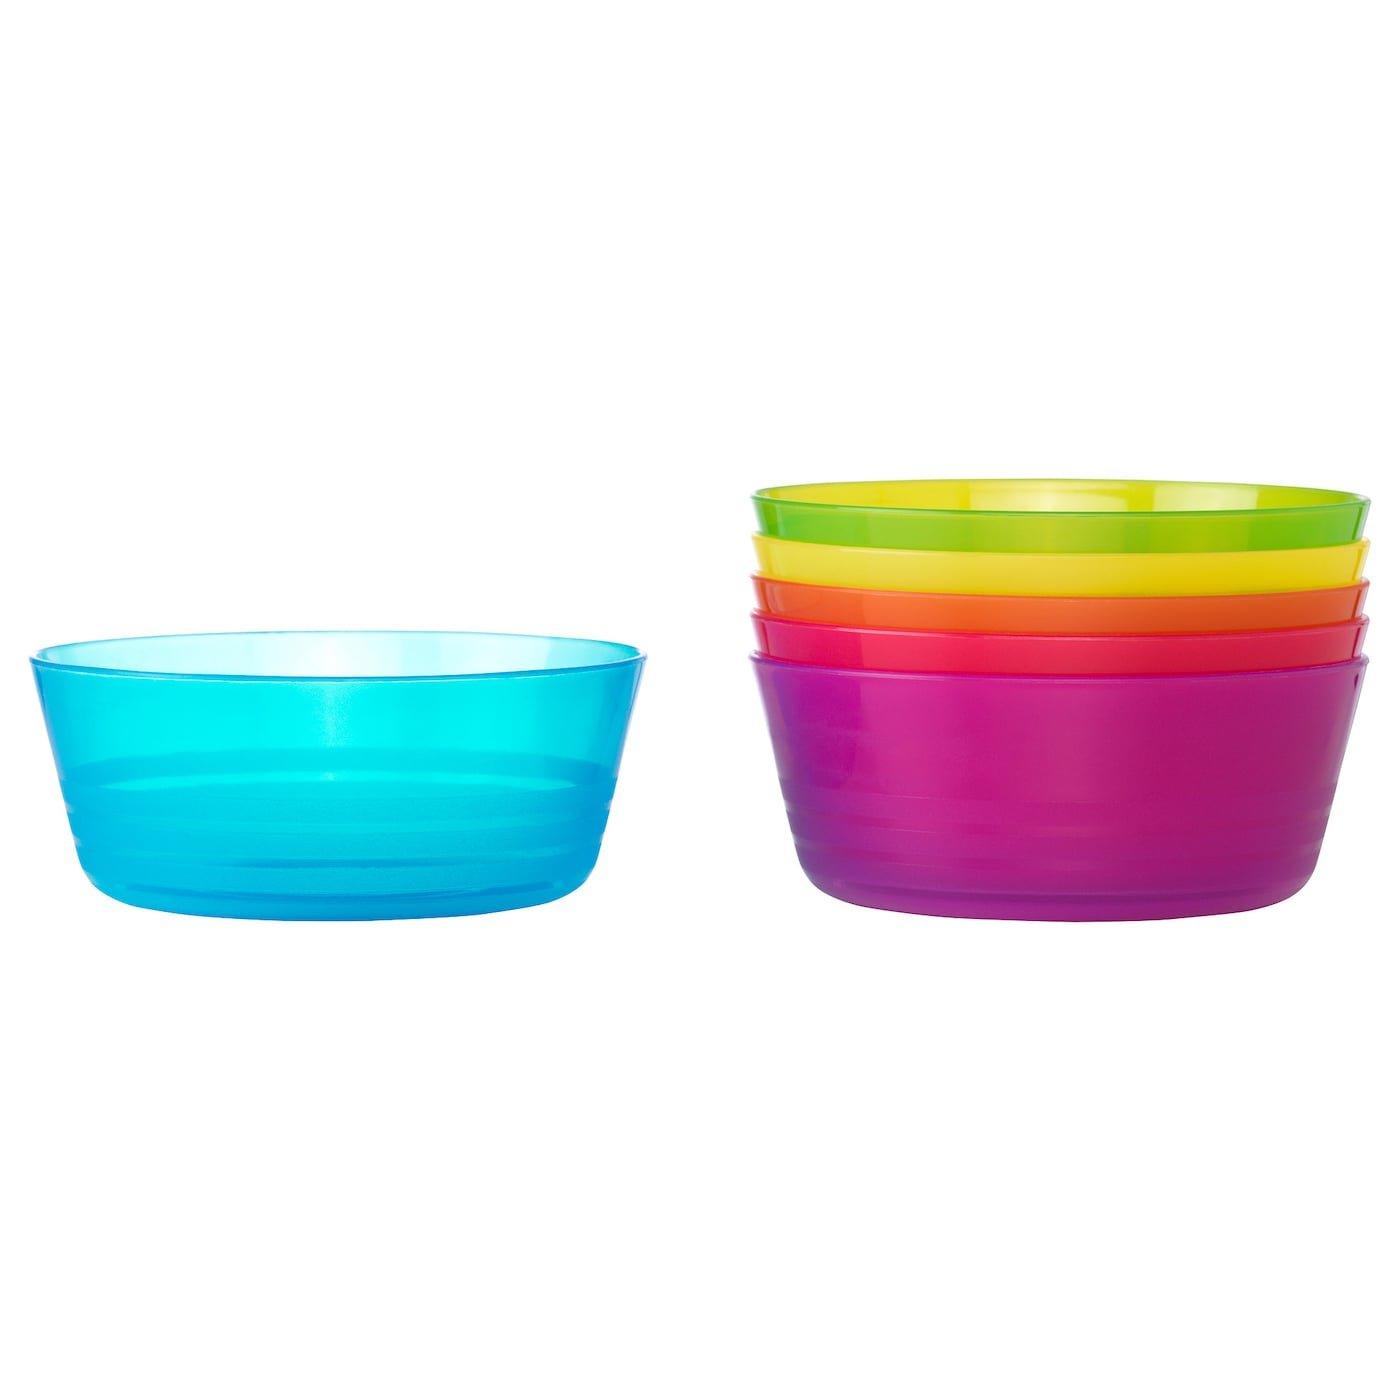 IKEA KALAS bowl Can be stacked to save space when stored.